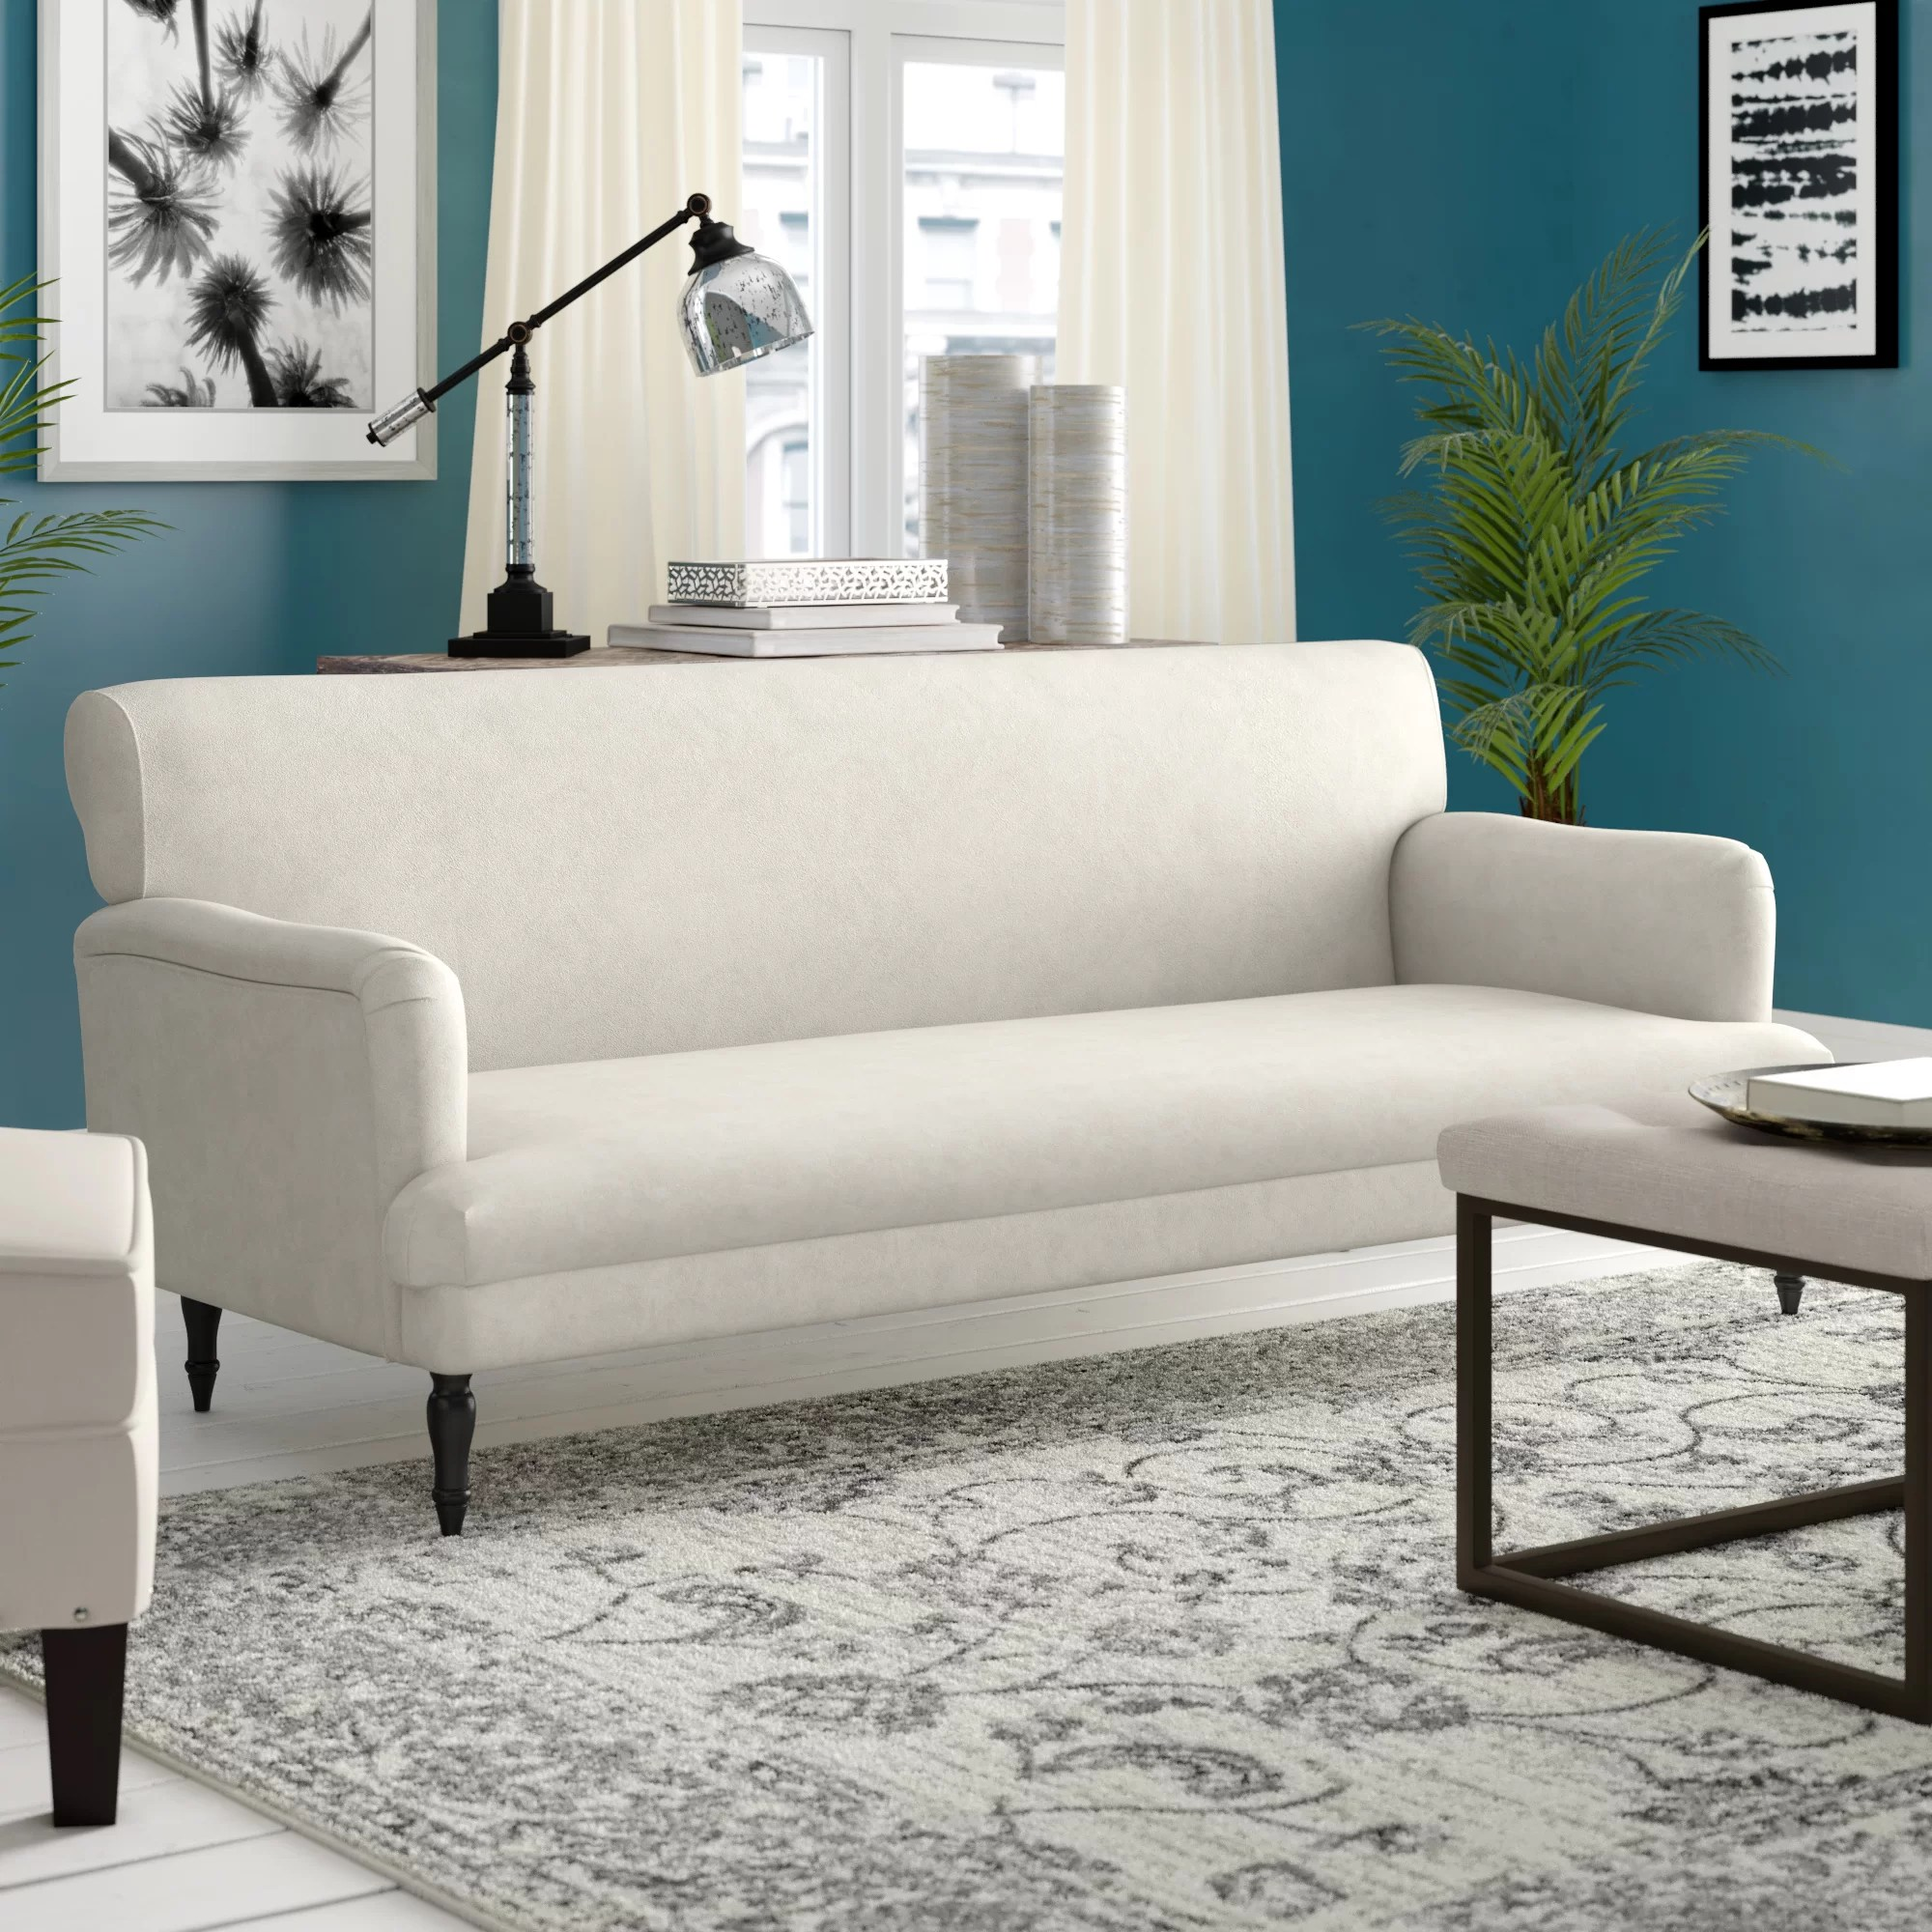 Table Clic Clac Annable 4 Seater Clic Clac Sofa Bed